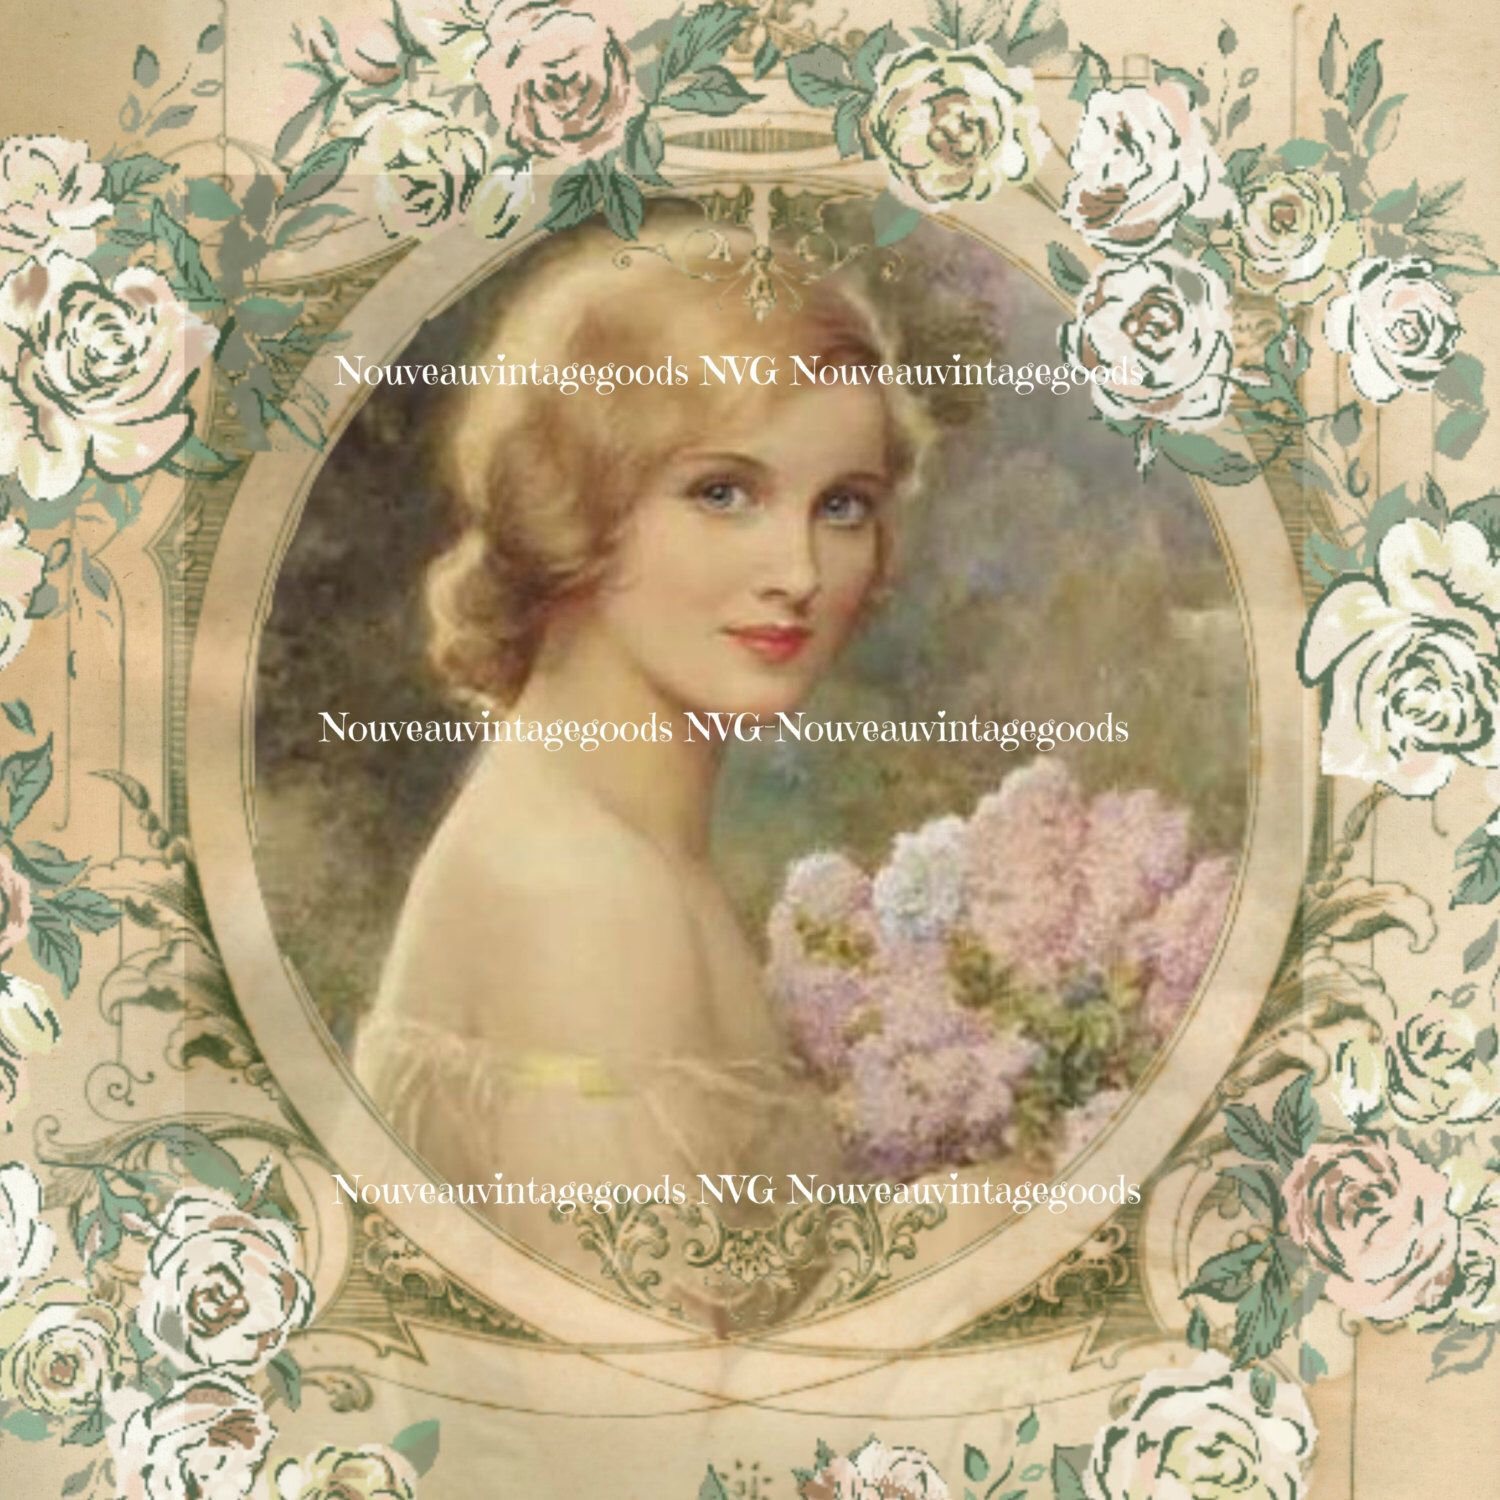 Vintage Romantic Woman with Flowers Portrait Artwork Print Digital Download & Digital Collage Sheet Vintage Scrapbook Supply French Décor by NouveauVintageGoods on Etsy https://www.etsy.com/listing/230249543/vintage-romantic-woman-with-flowers